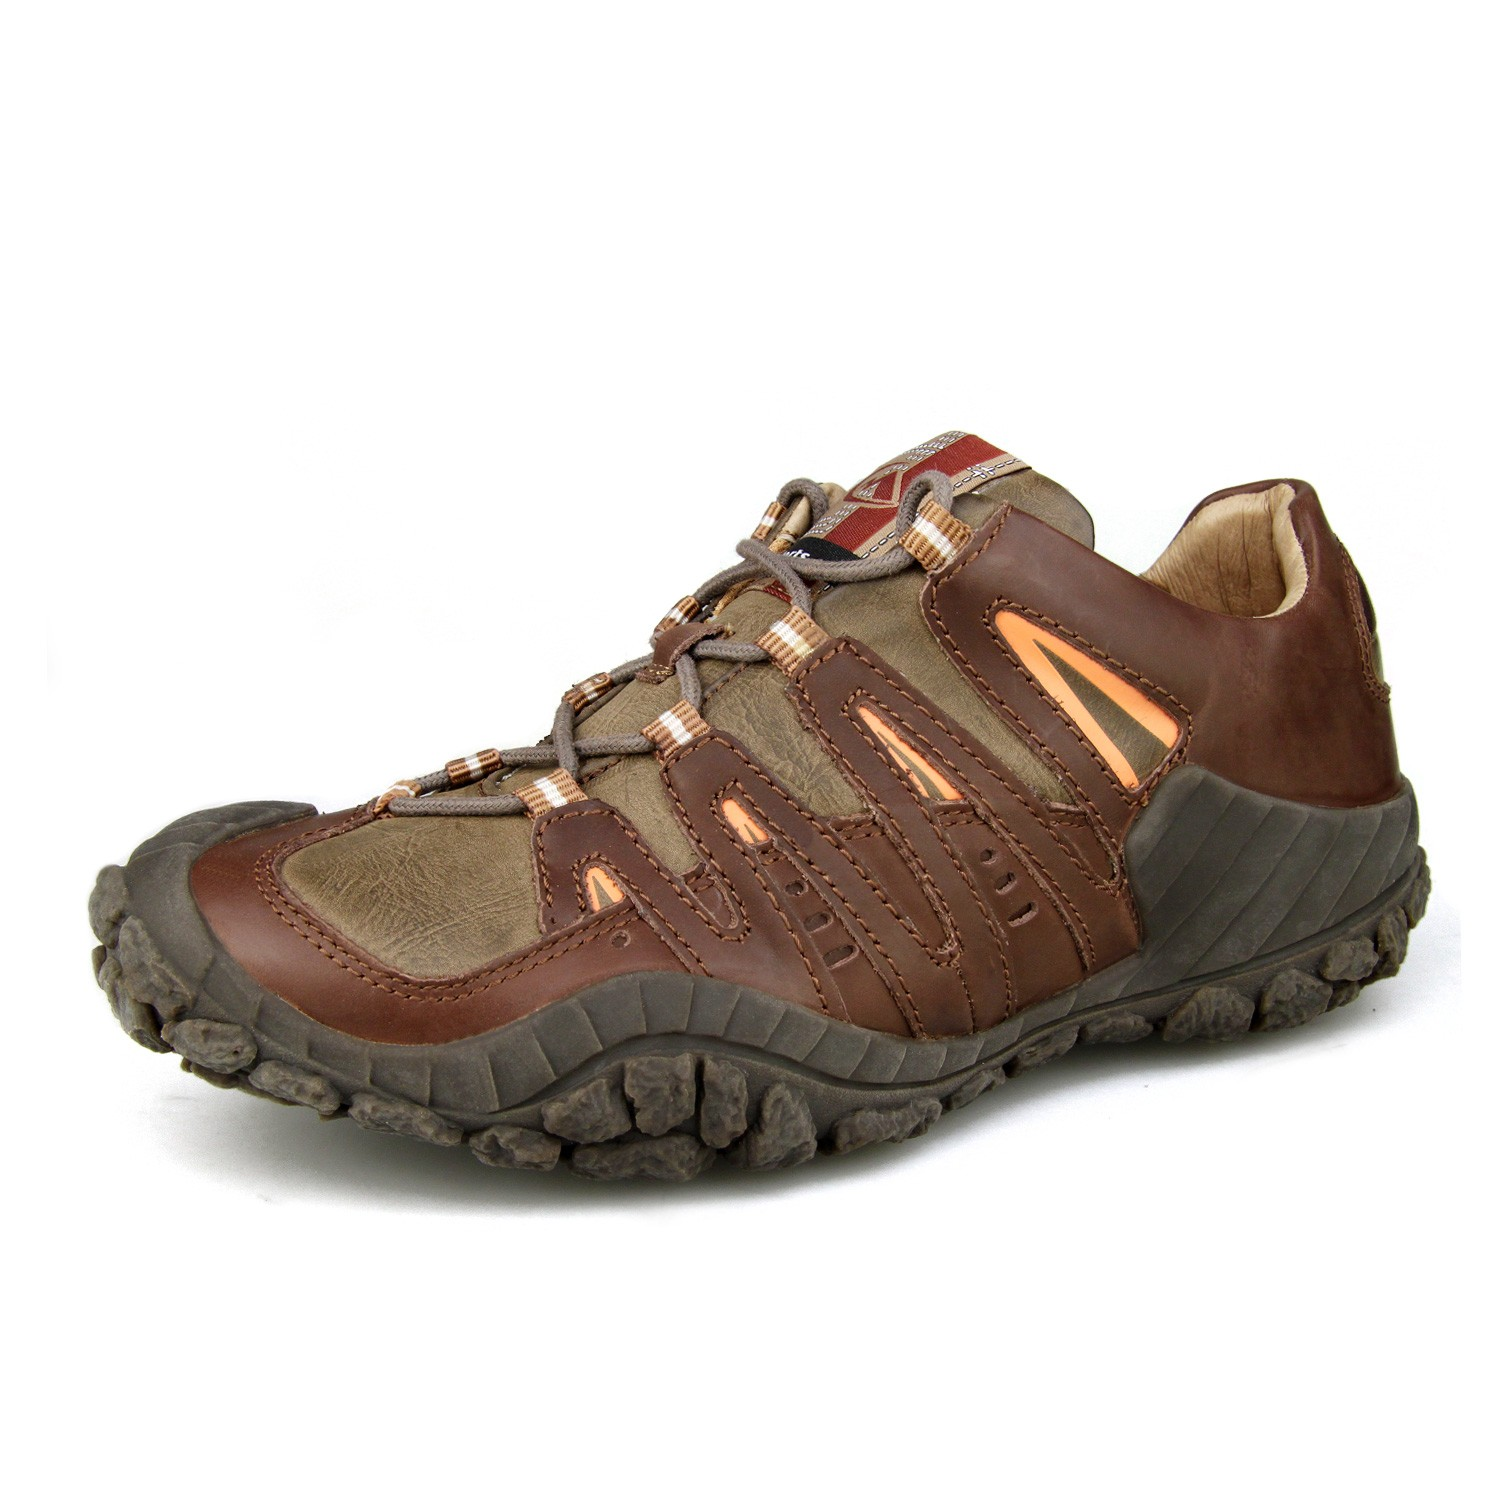 Leather Outdoor Hiking Sandals Manufacturers, Leather Outdoor Hiking Sandals Factory, Supply Leather Outdoor Hiking Sandals